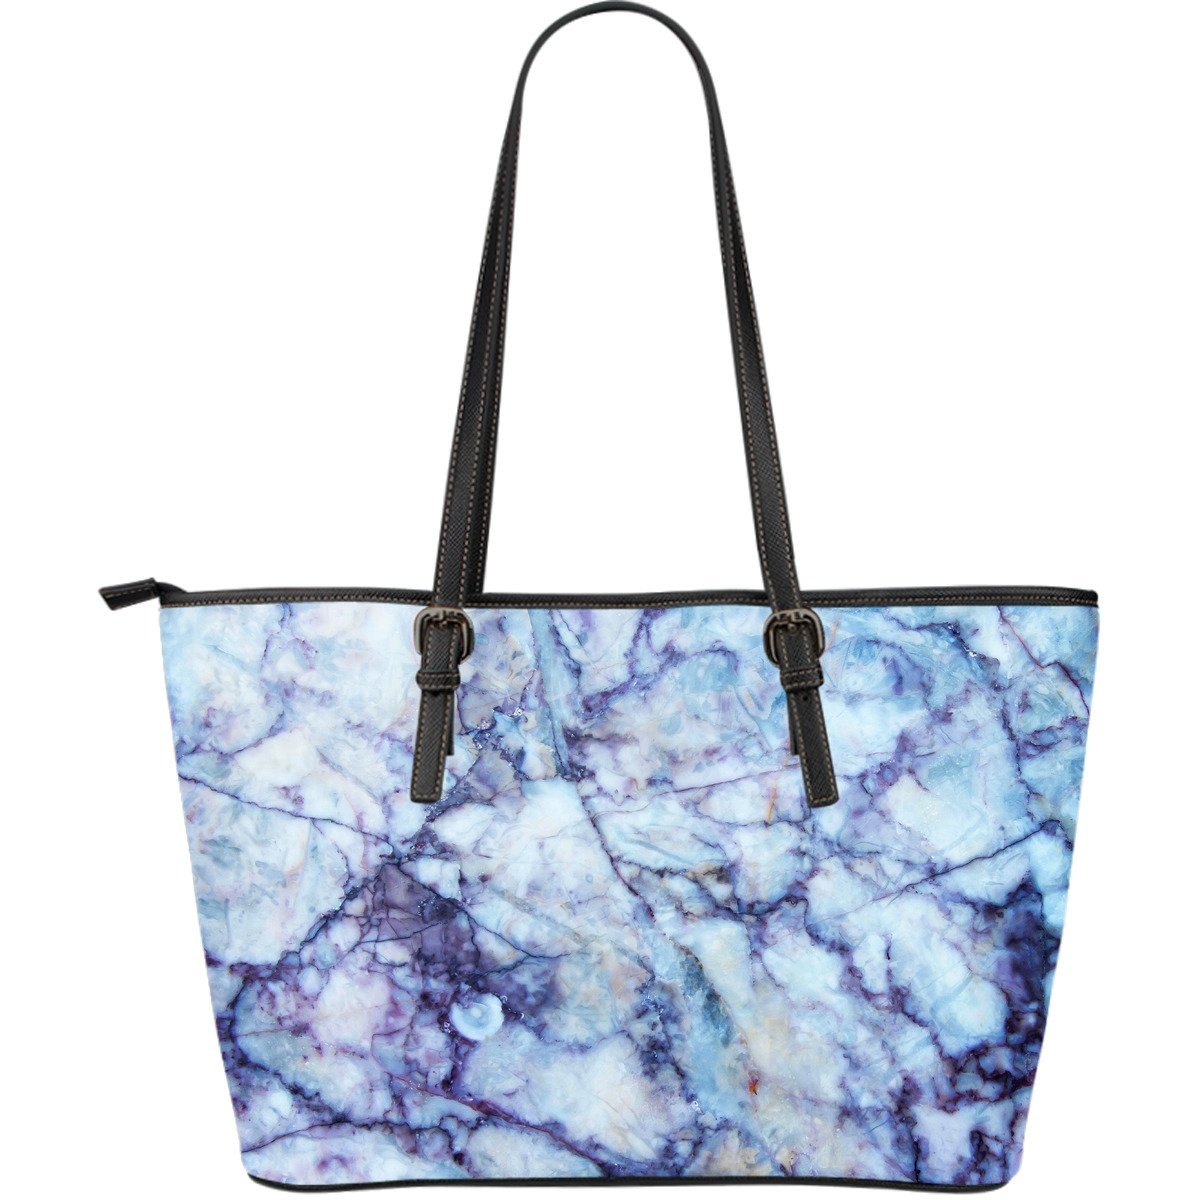 Blue Marble Print Leather Tote Bag GearFrost